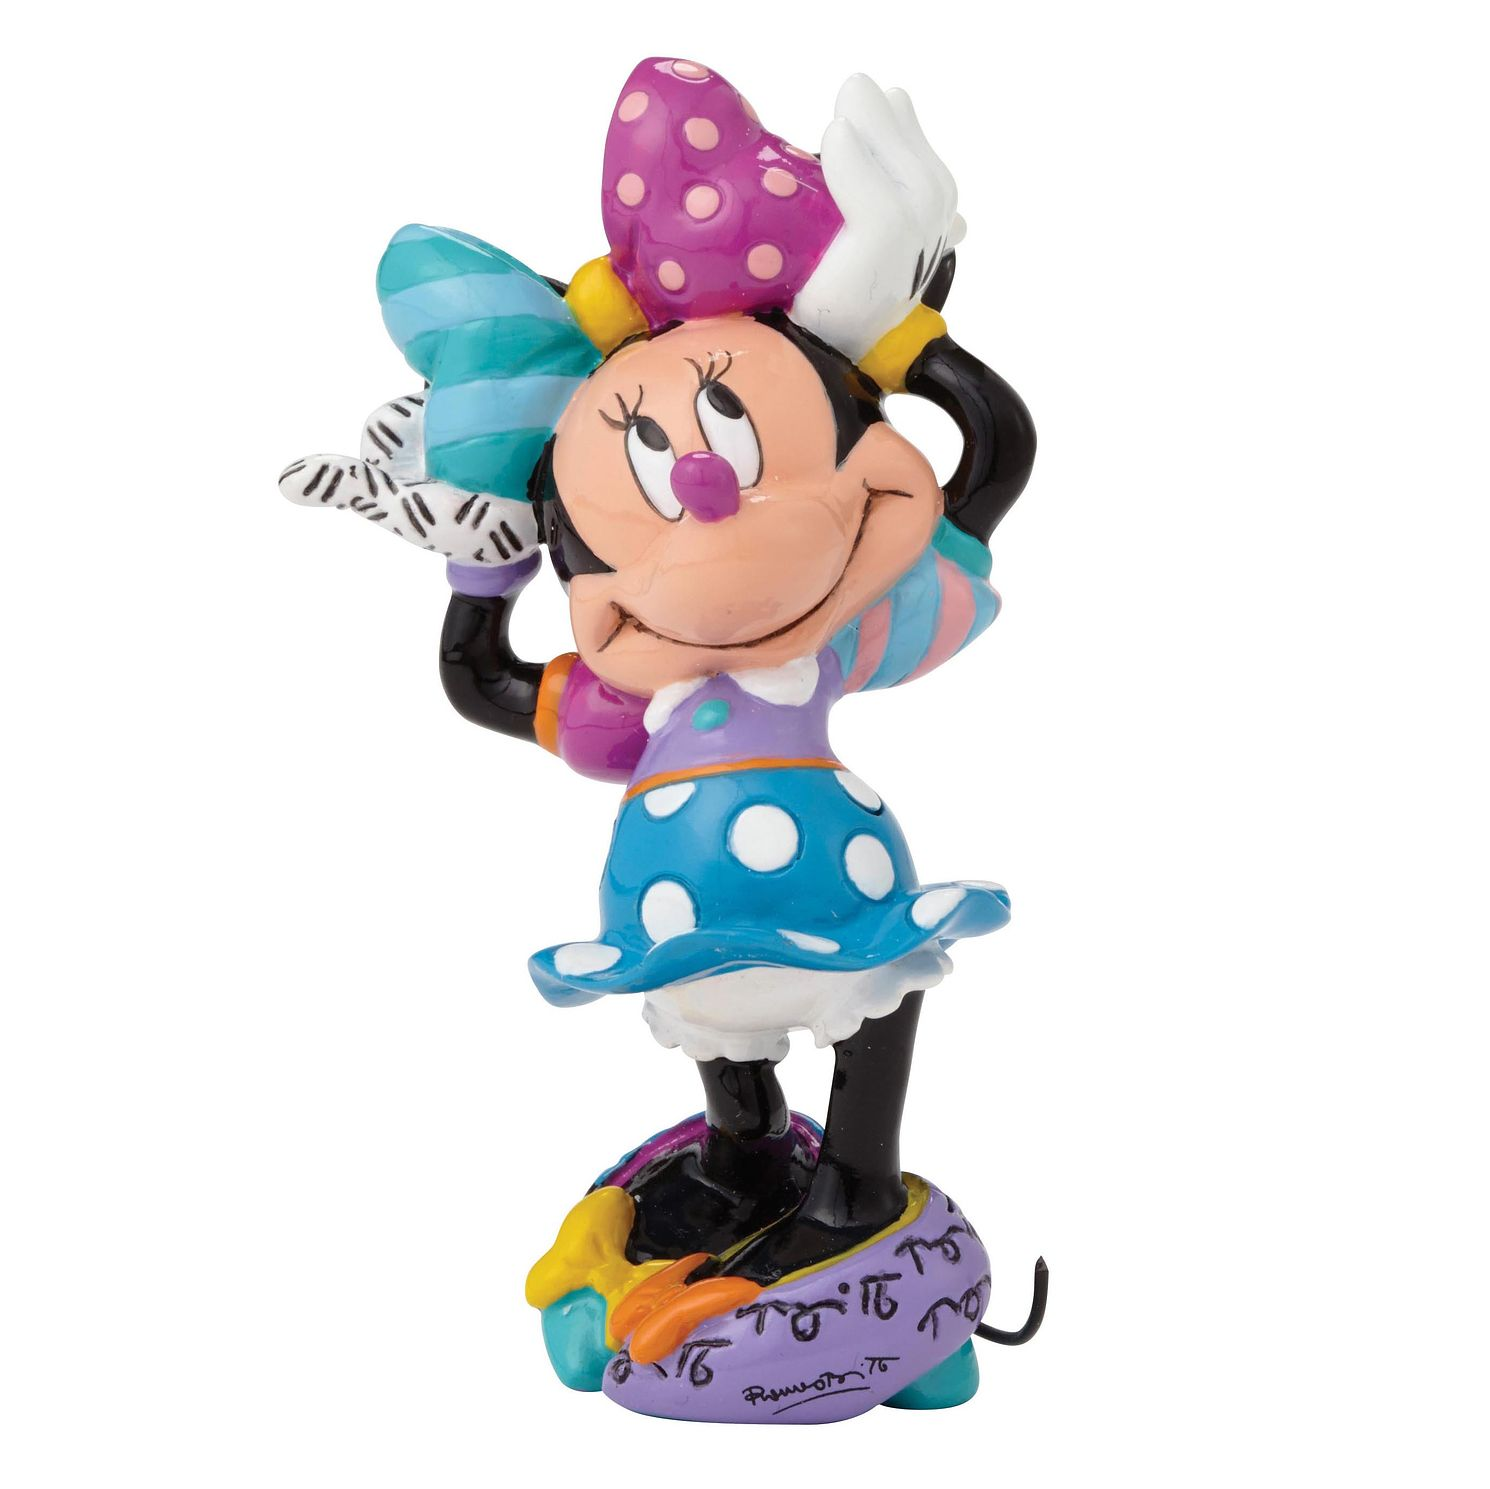 Disney Britto Minnie Mouse Mini Figurine - Product number 9422234